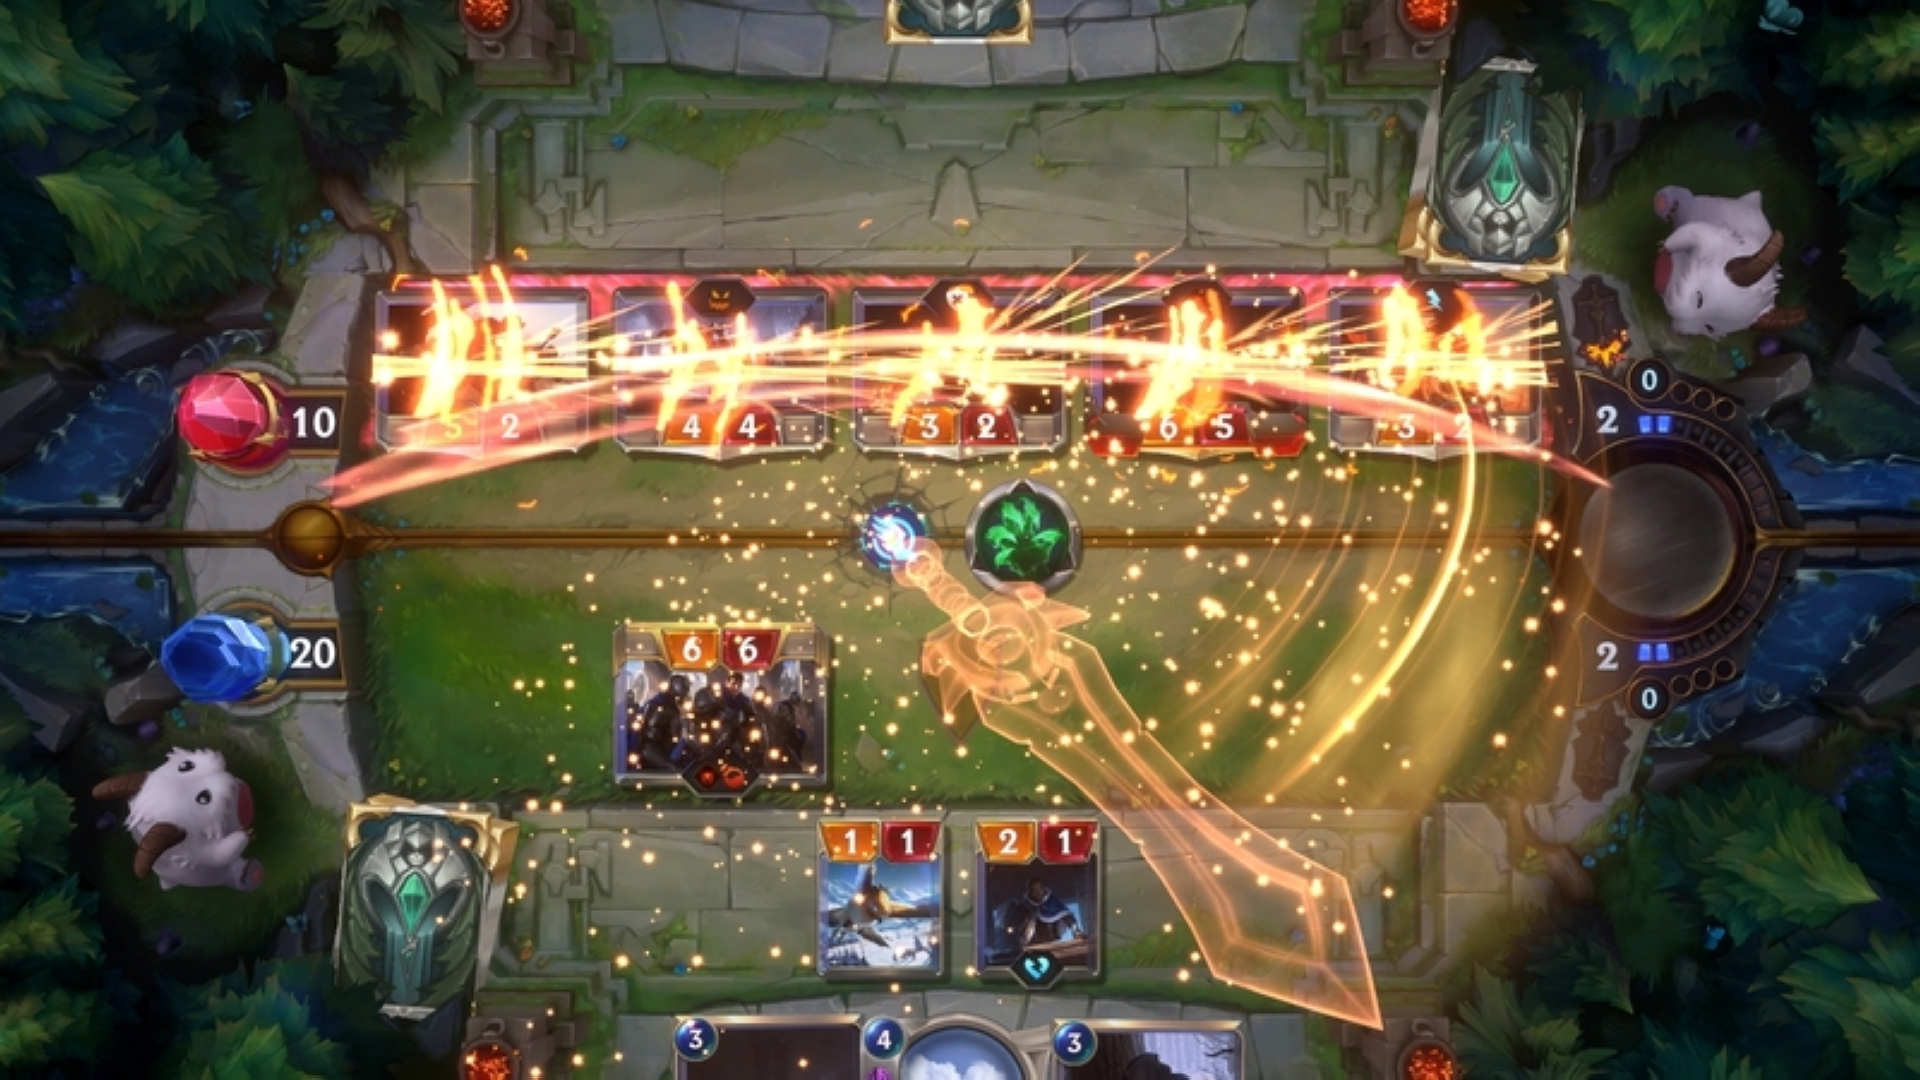 Legends Of Runeterra: New digital card game from Riot Games | The Star